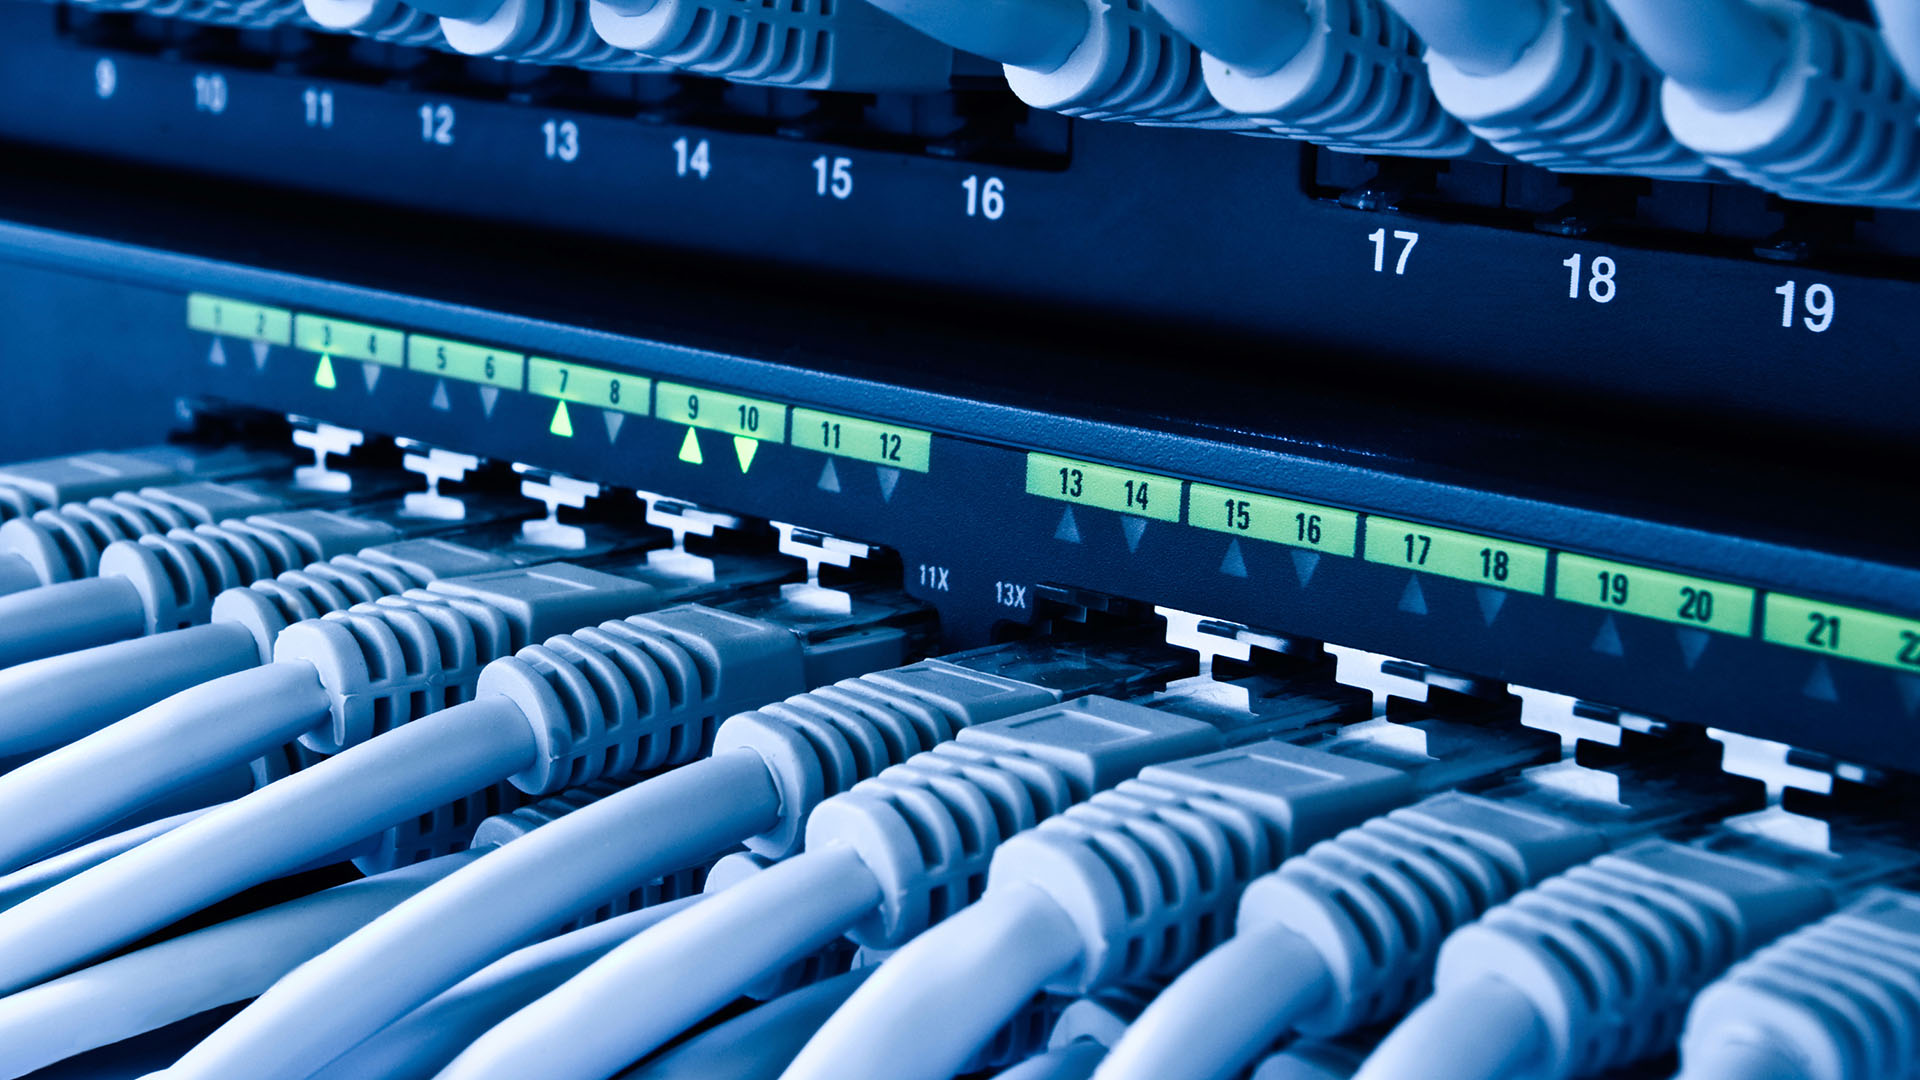 Elsmere Kentucky Trusted Voice & Data Network Cabling Provider